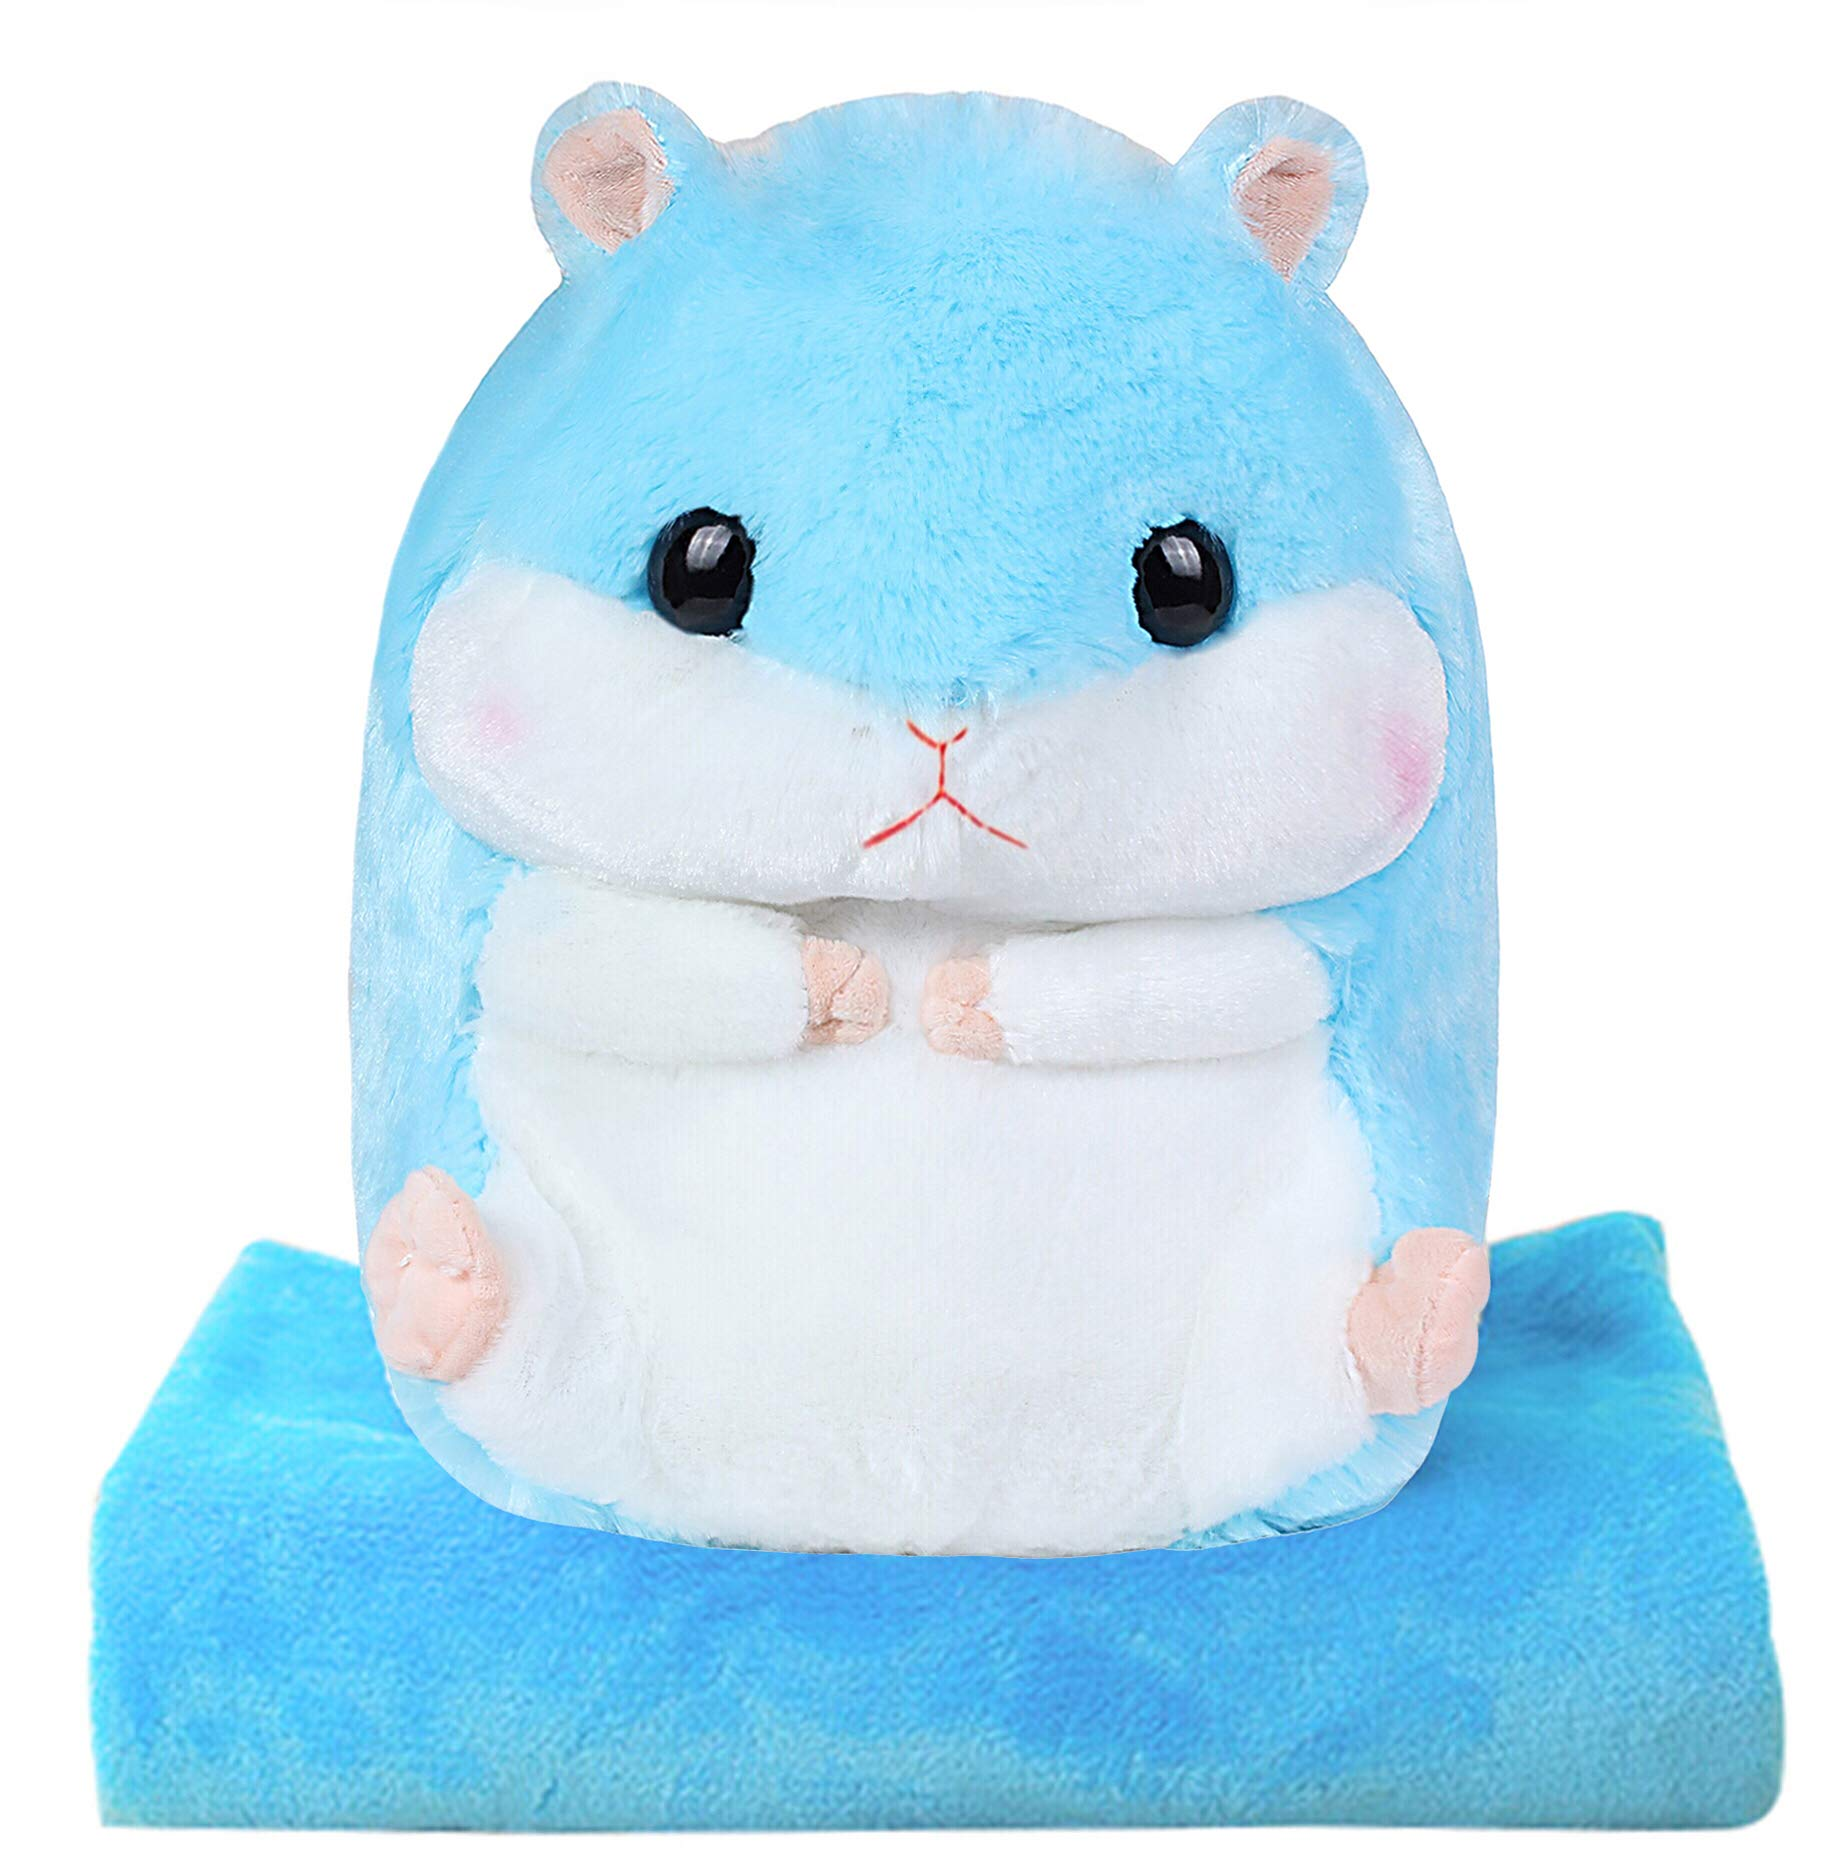 Alpacasso 3 In 1 Cute Hamster Plush Stuffed Animal Toys Throw Pillow Blanket Set